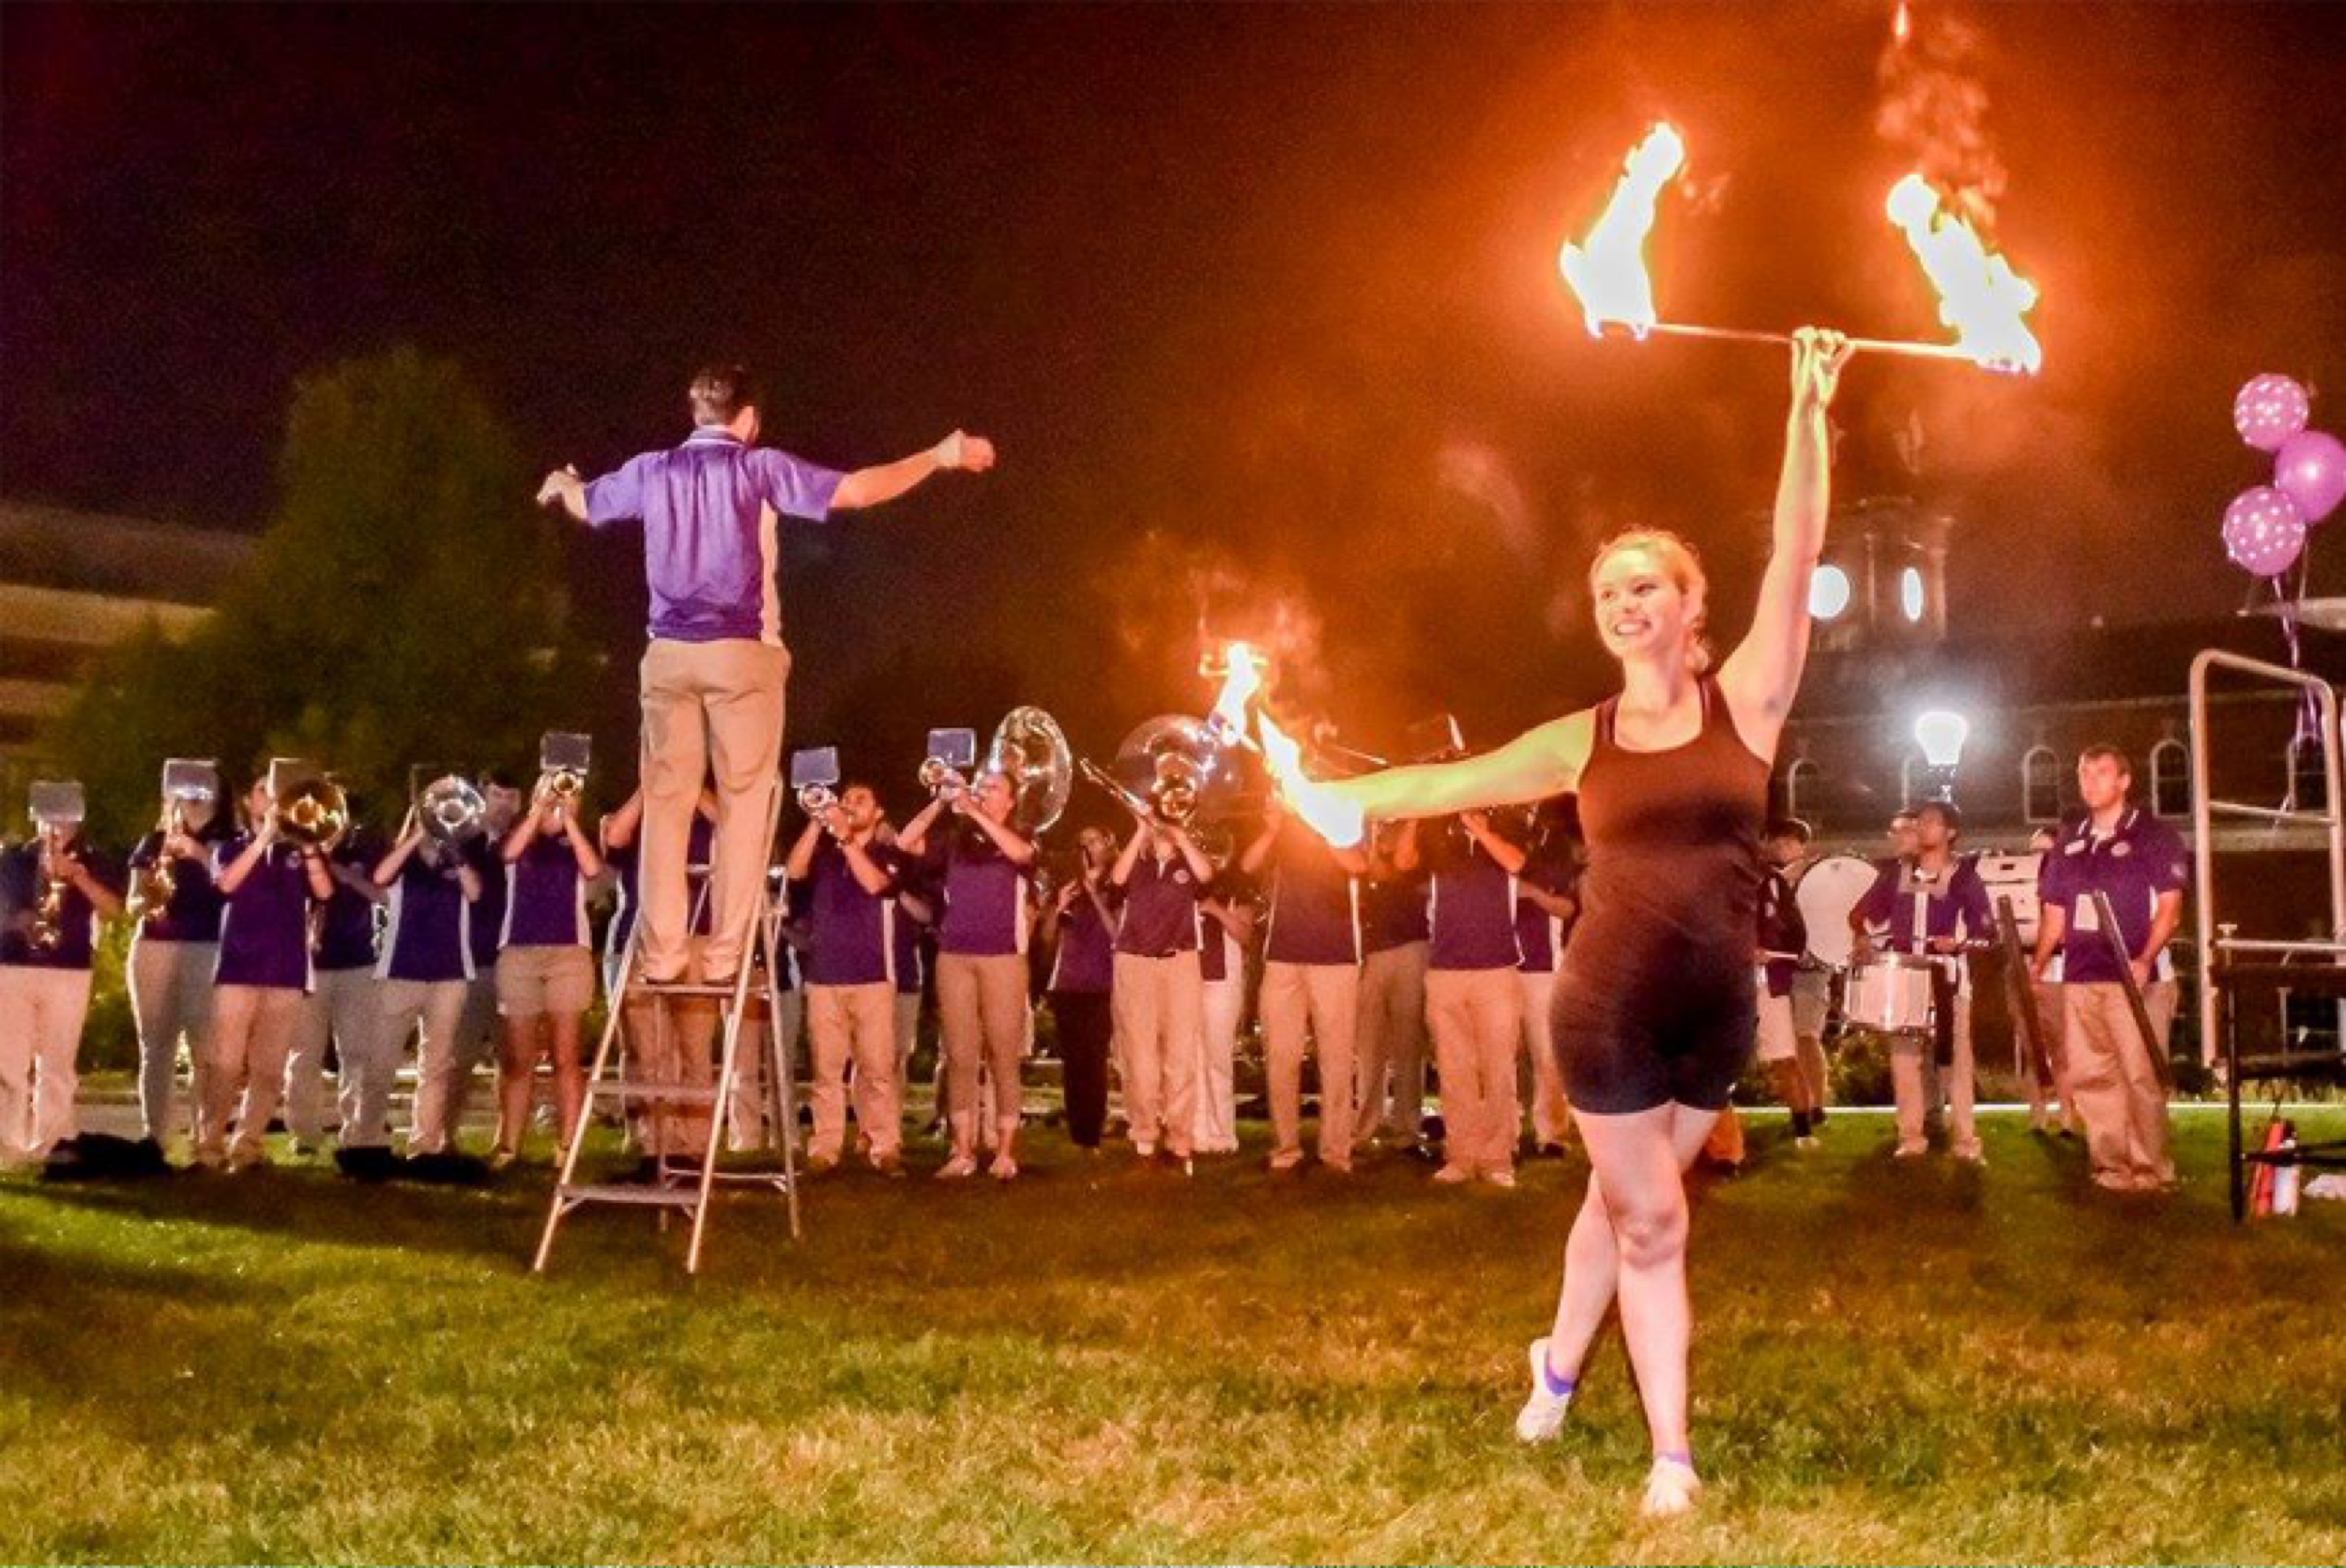 Dating a marching band guy